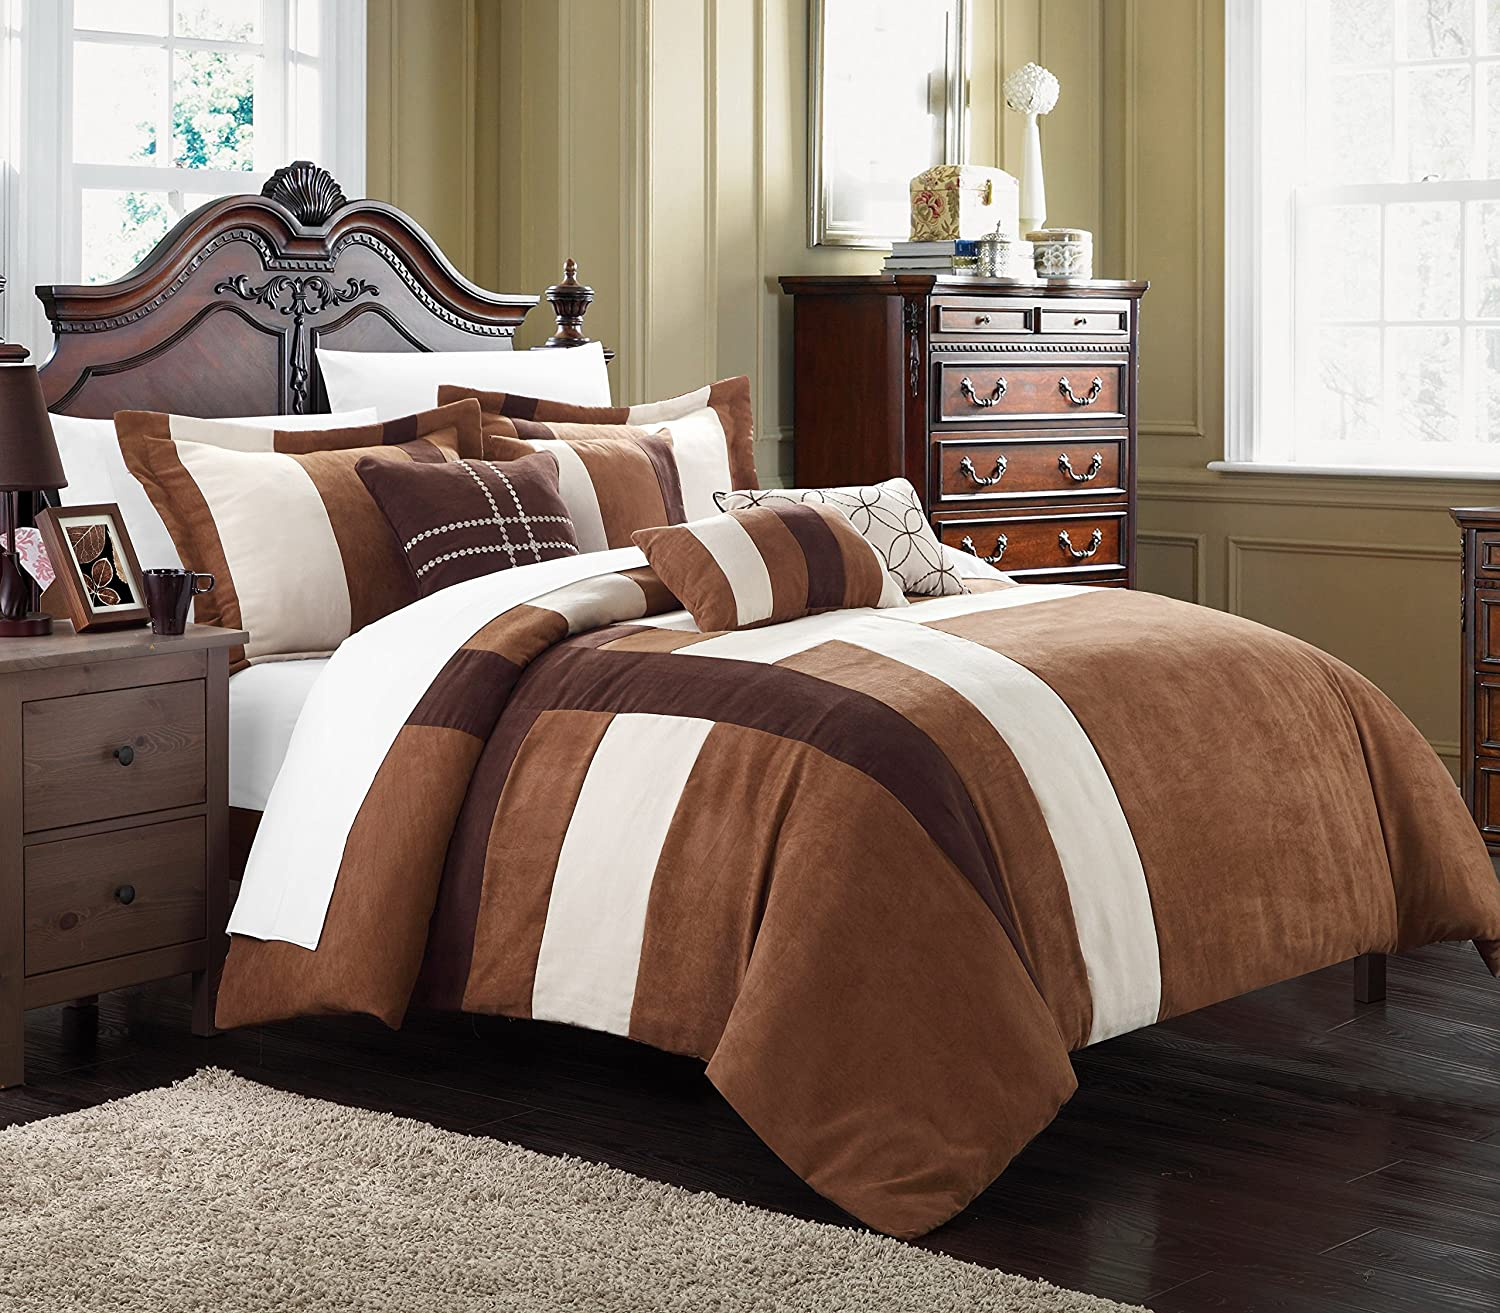 Chic Home Regina 7-Piece Plush Microsuede Comforter Set, Includes Bed in a Bag, 2-Sham and 4-Throw Pillow, Queen, Brown/Cream CS1741-AN